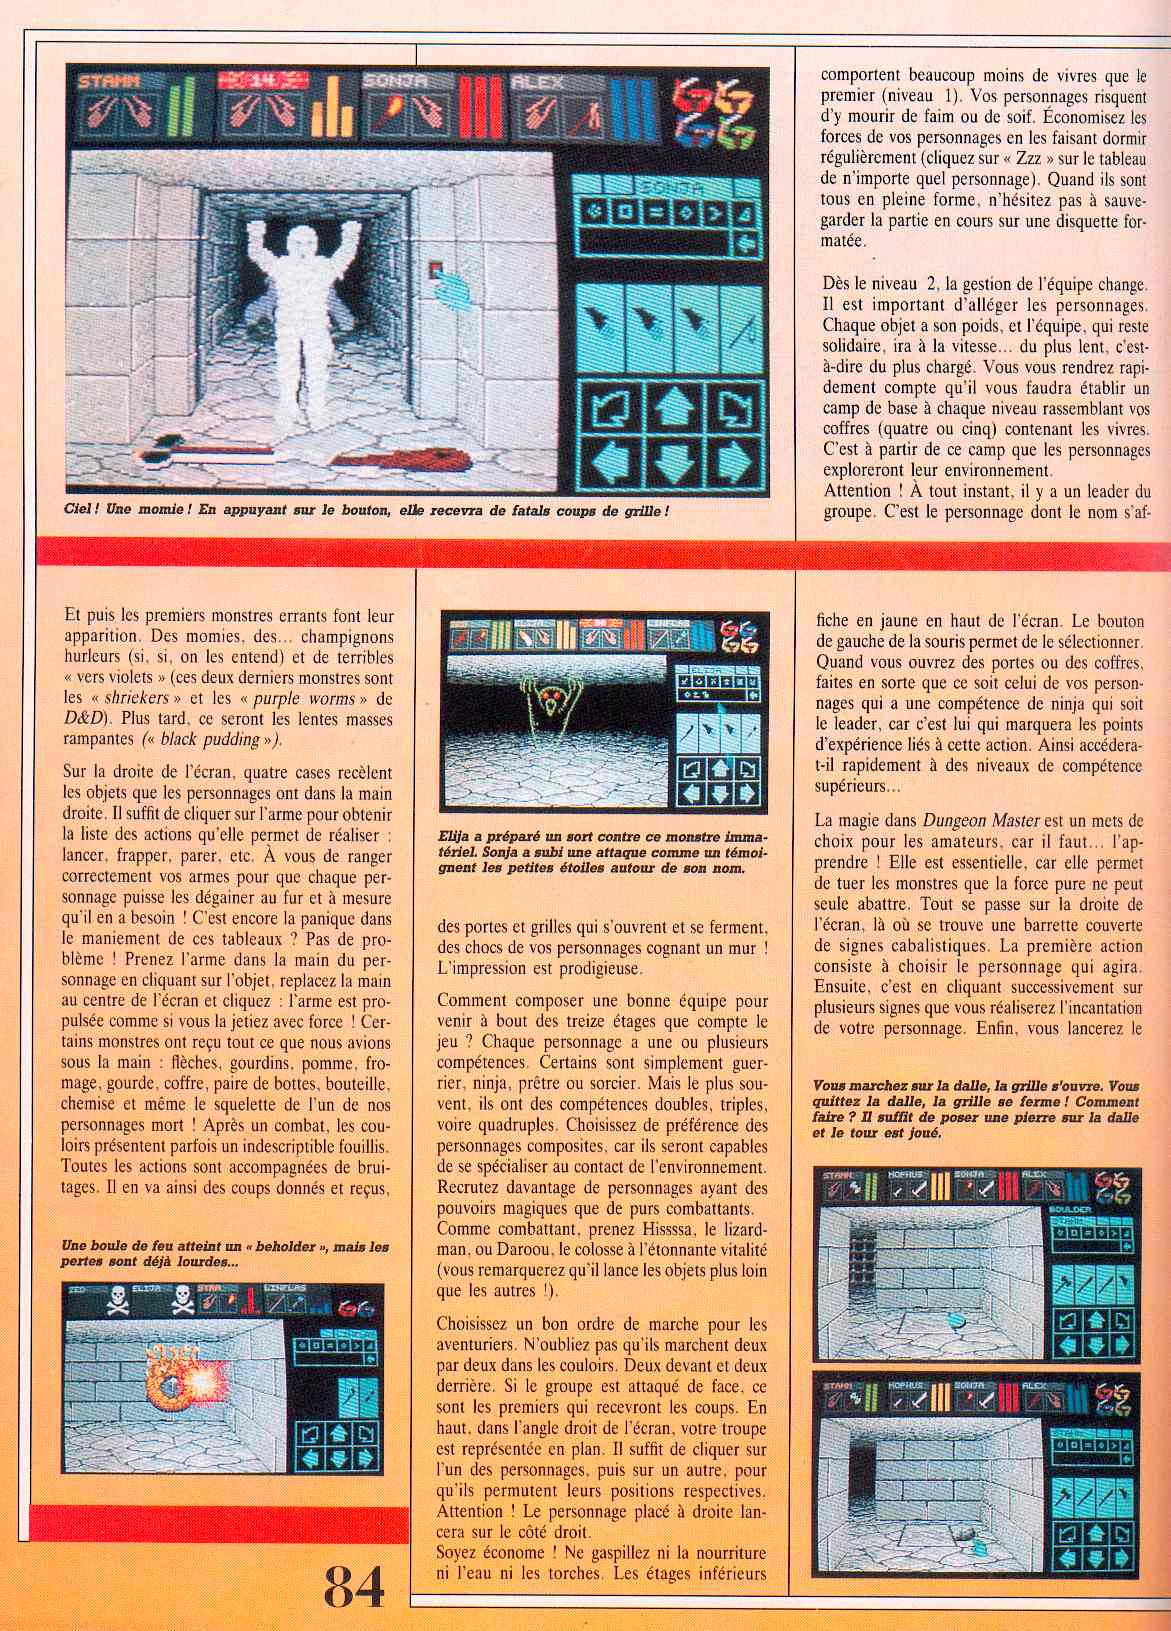 Dungeon Master guide published in French magazine 'Jeux et Stratégies', Issue #51, June 1998, Page 84